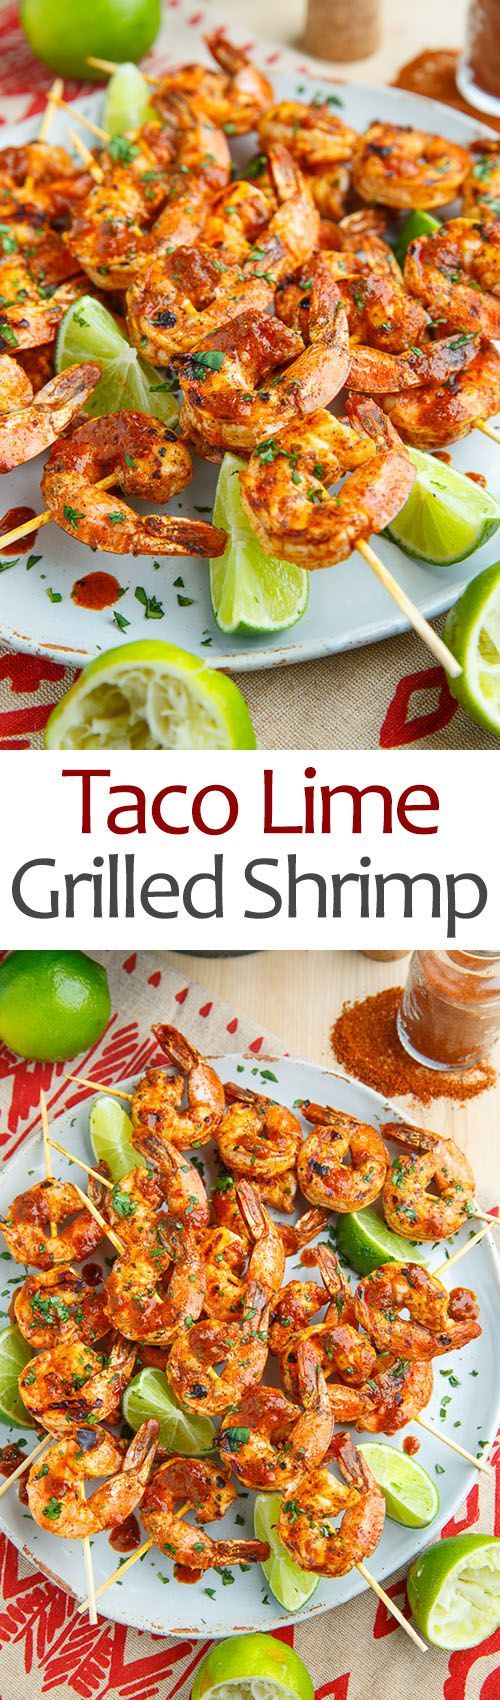 Taco Lime Grilled Shrimp recipe! These would be Soooo delicious!! Really simple and quick to make too- only 10 minutes prep!!! #taco #shrimp #recipe